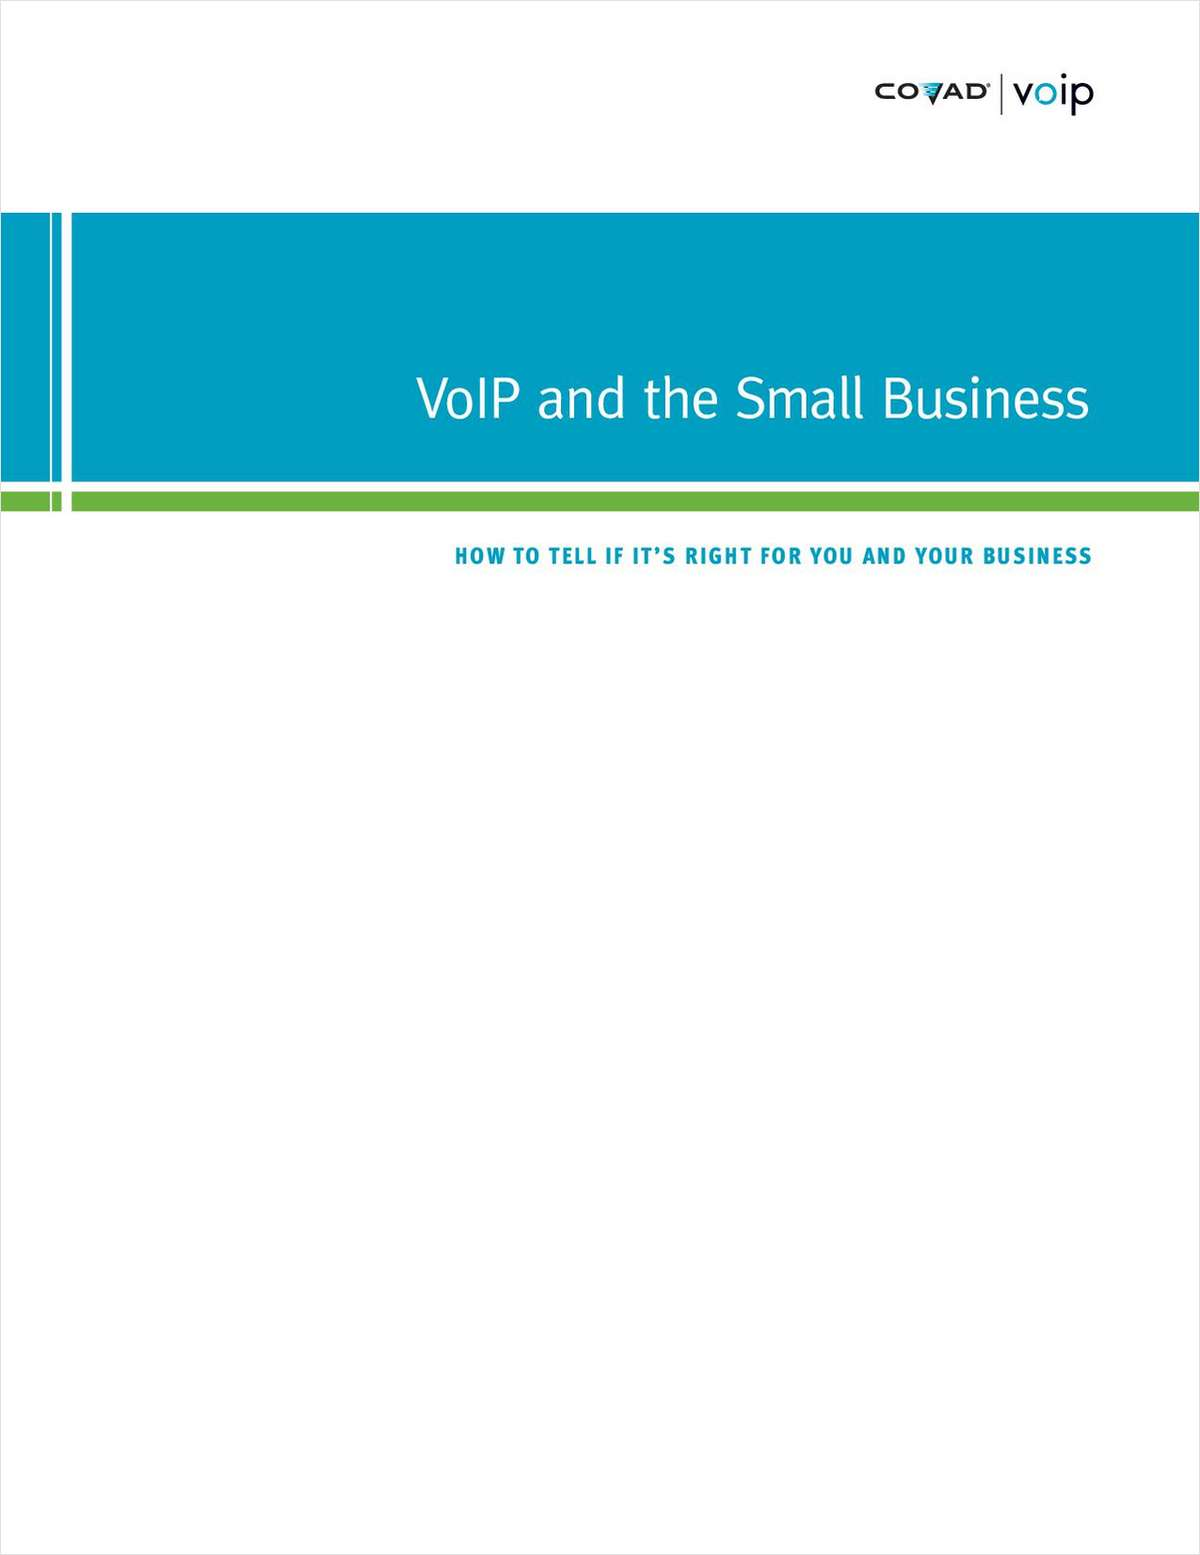 VoIP and the Small Business: How to Tell If It's Right for You and Your Business